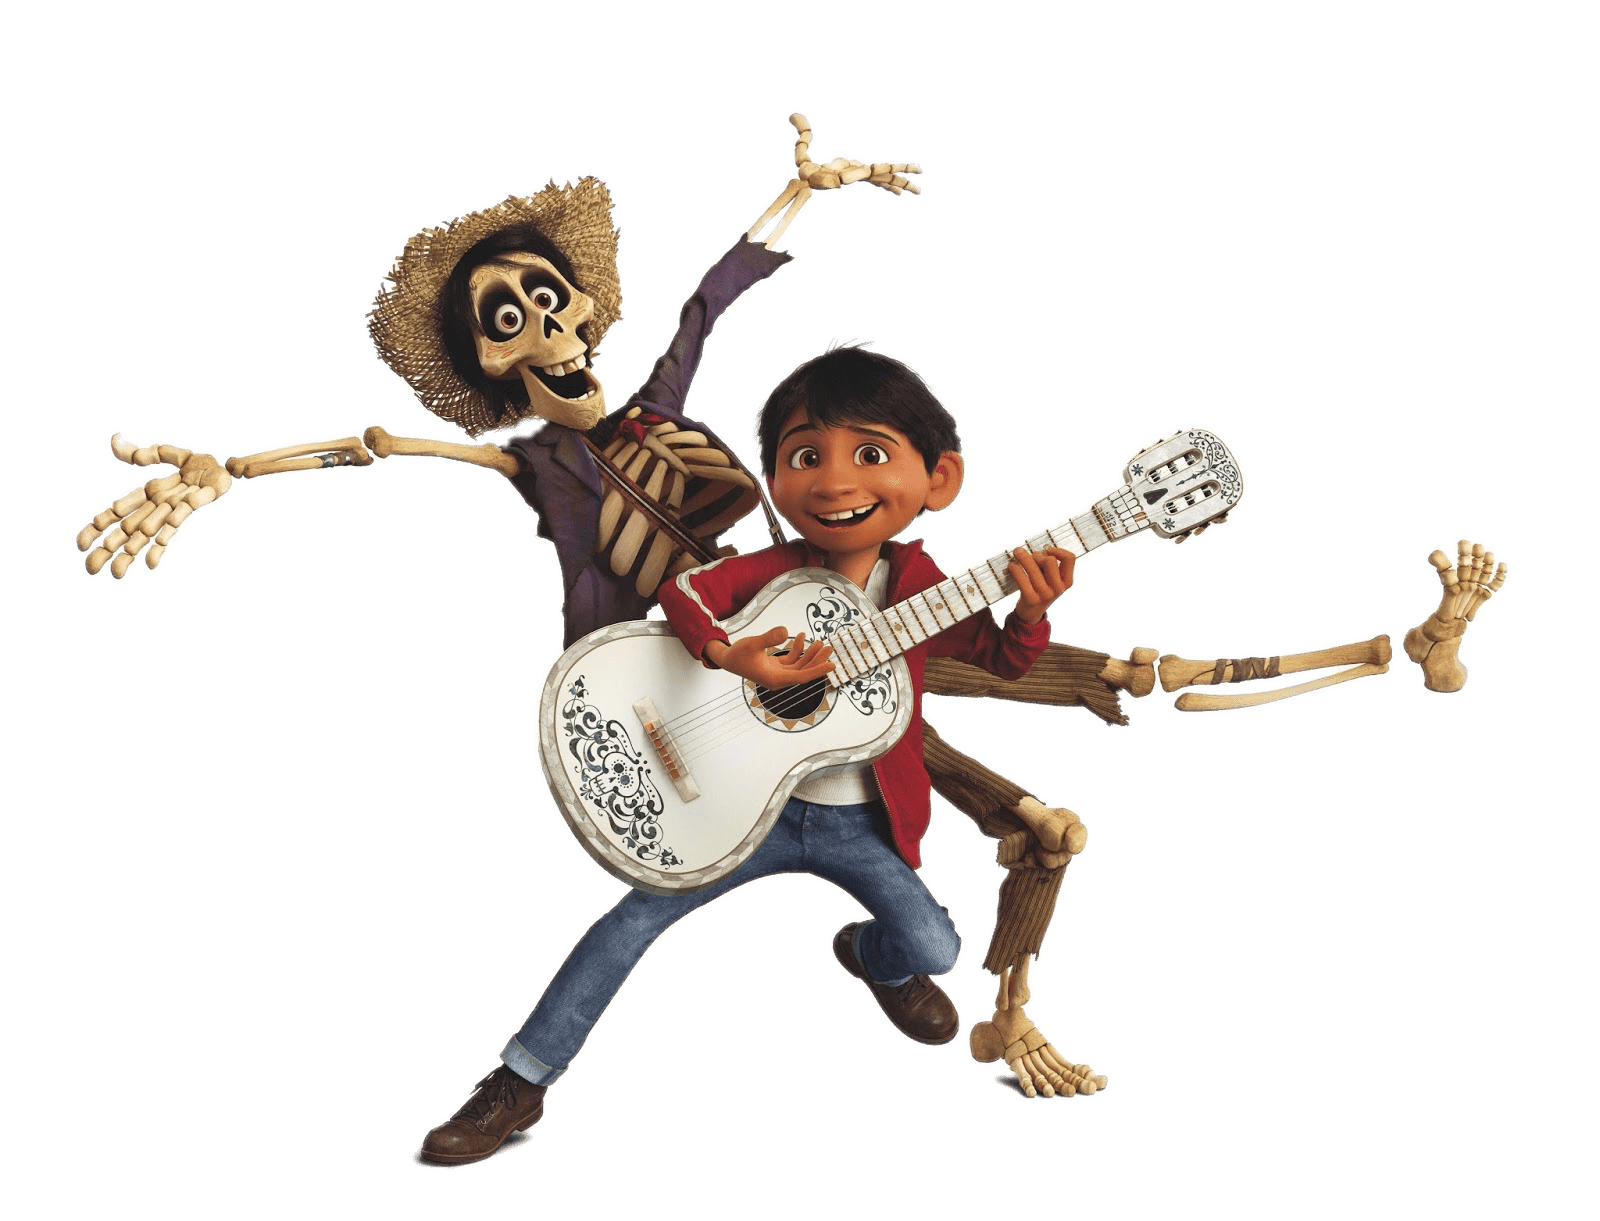 Coco miguel png. And hector playing music